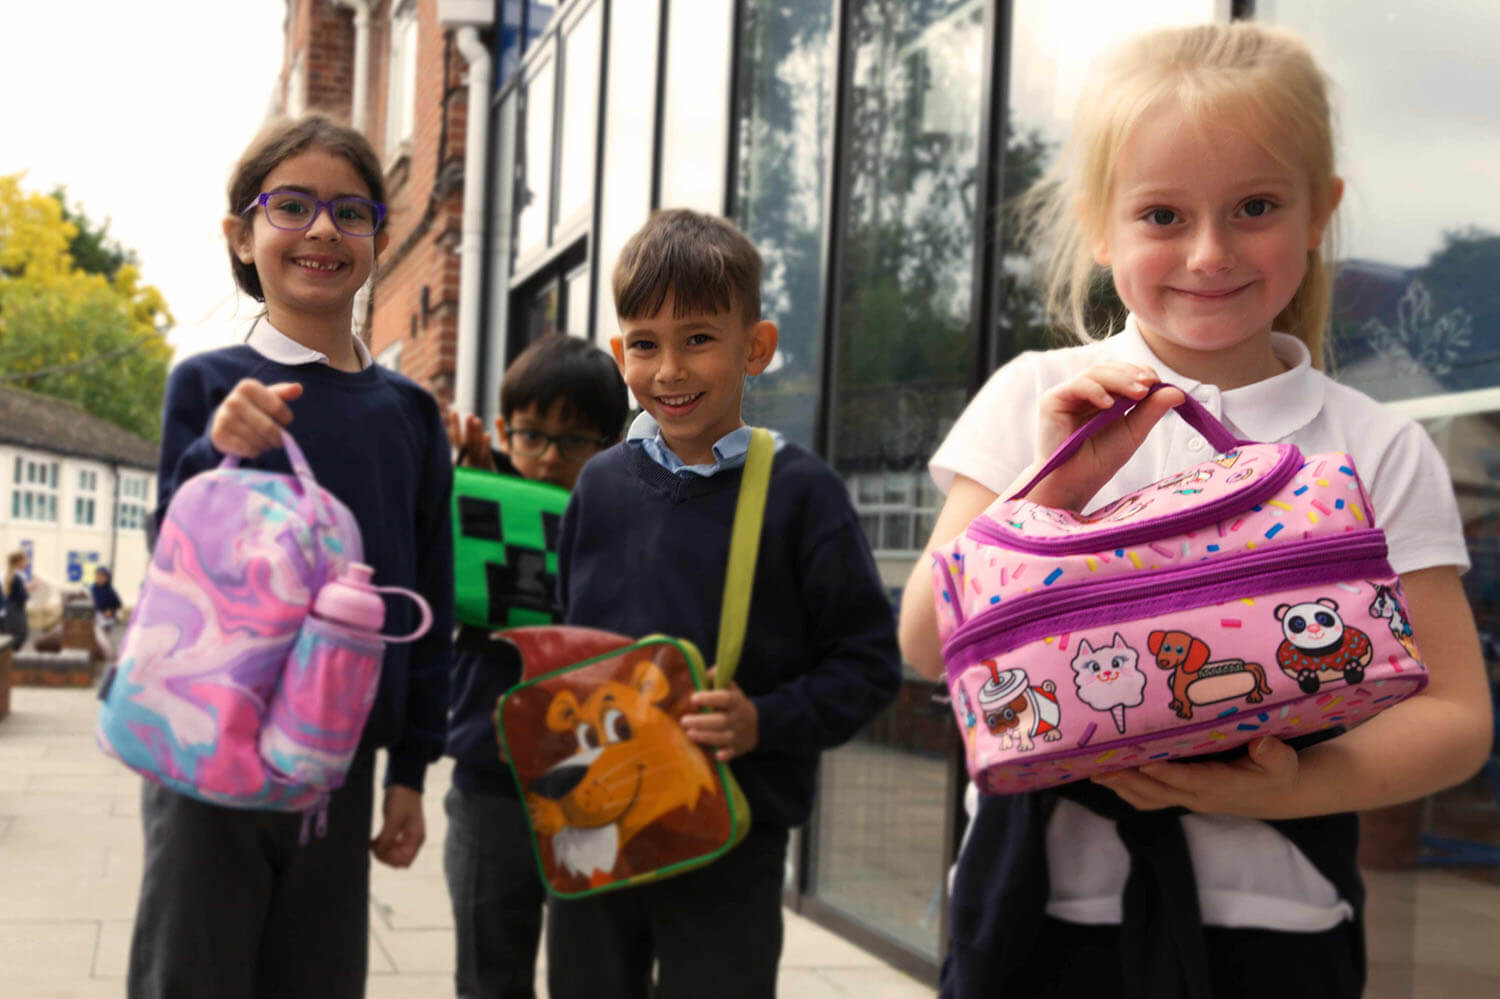 Children at school holding their lunchboxes